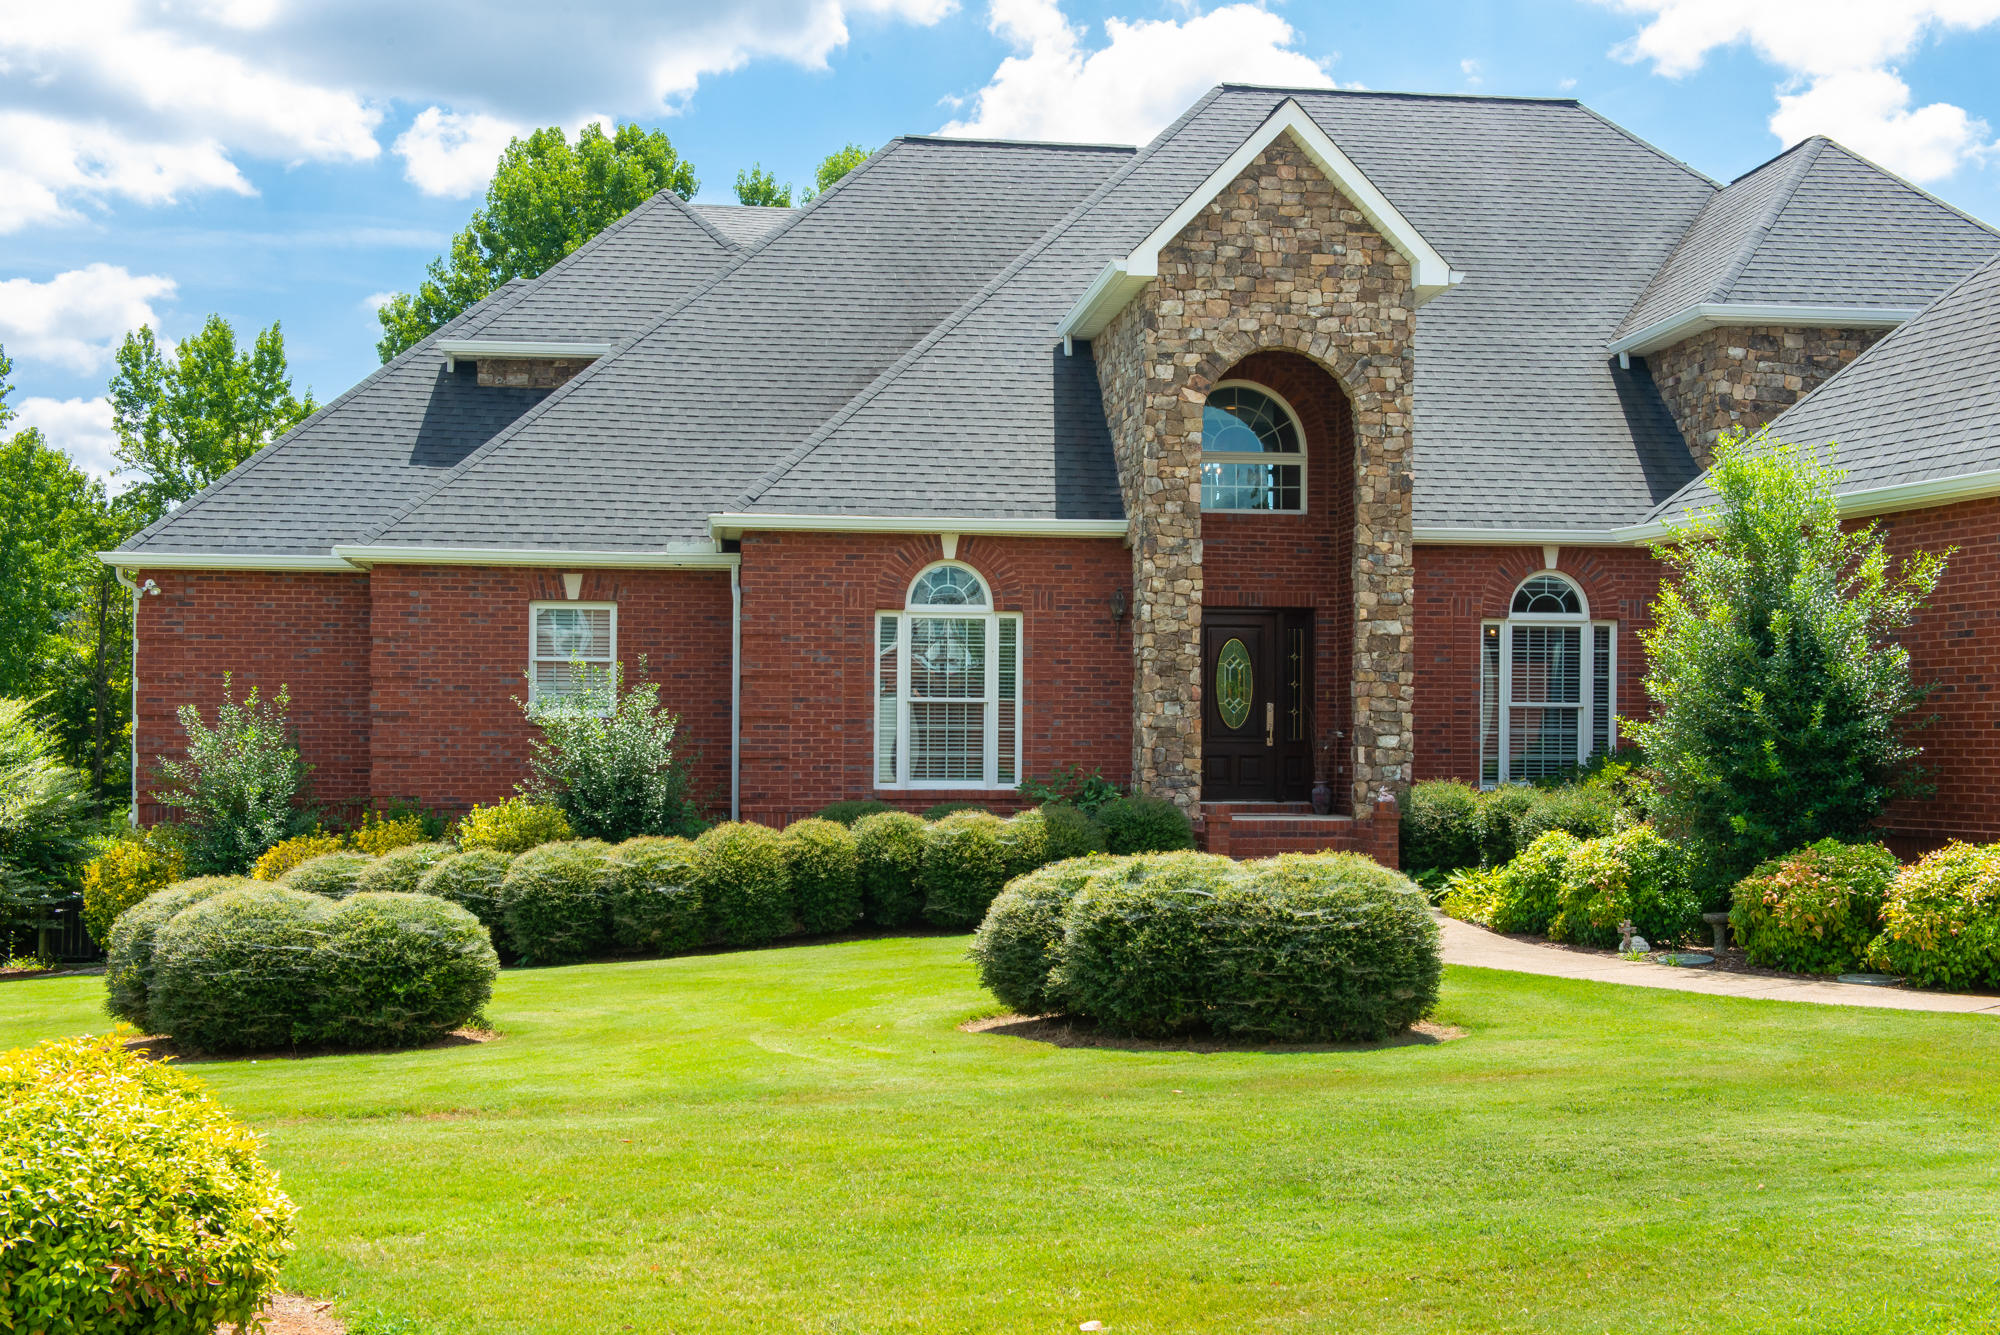 Details for 8506 Goslin, Ooltewah, TN 37363